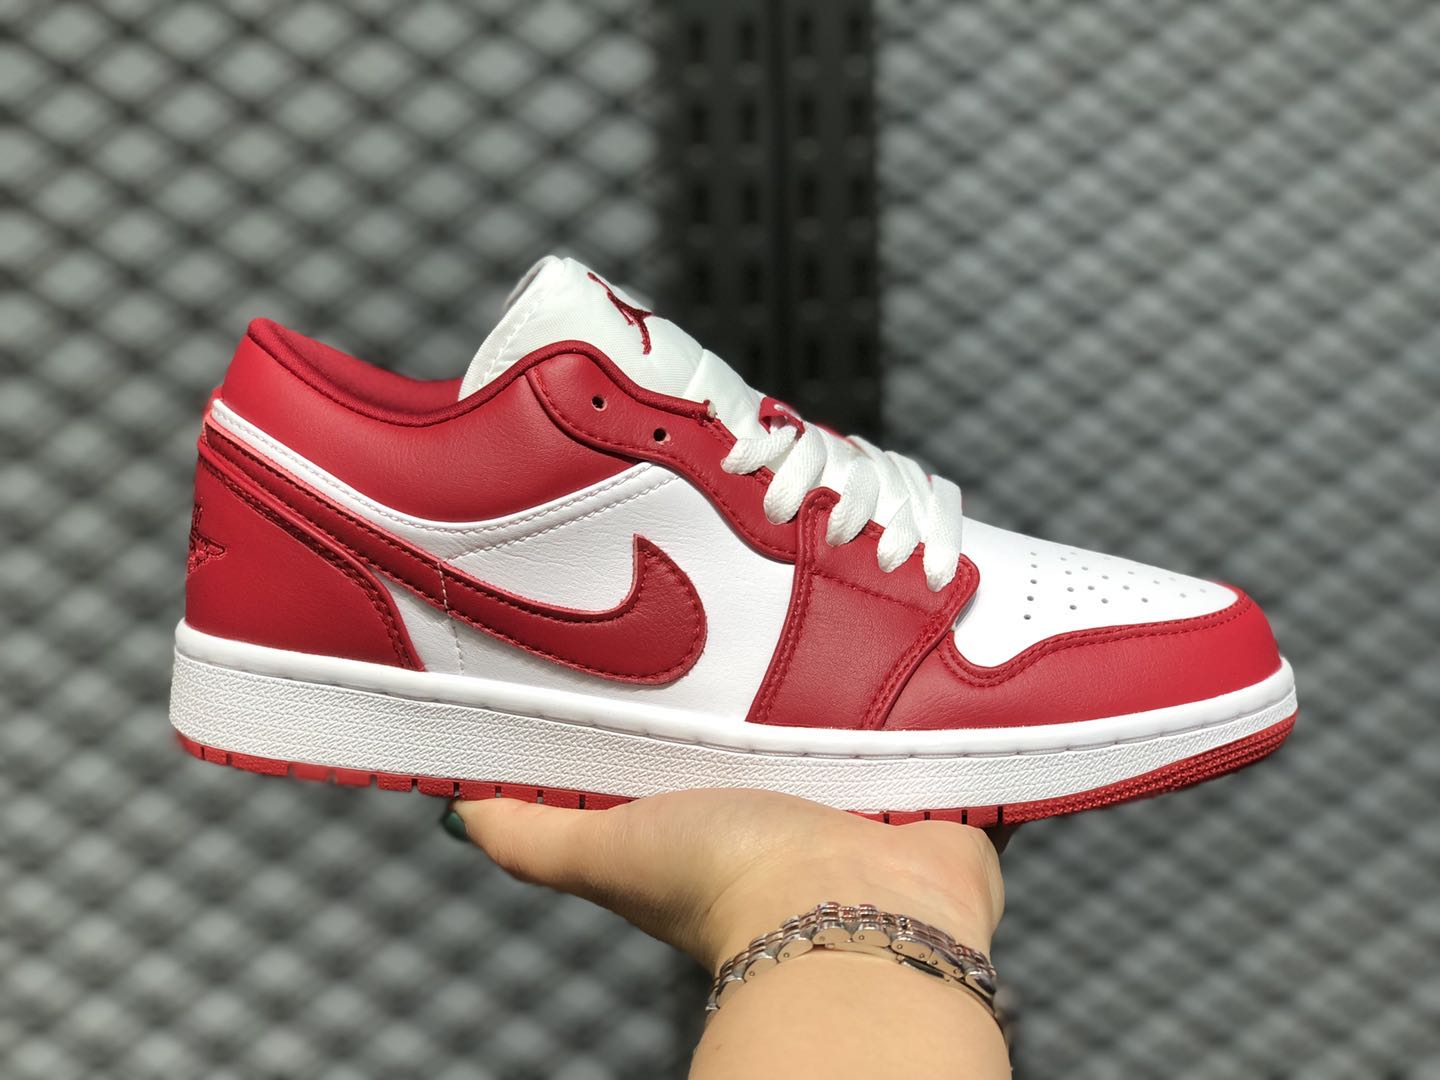 Air Jordan 1 Low Gym Red/Gym Red/White 2020 Latest Men's Shoes ...